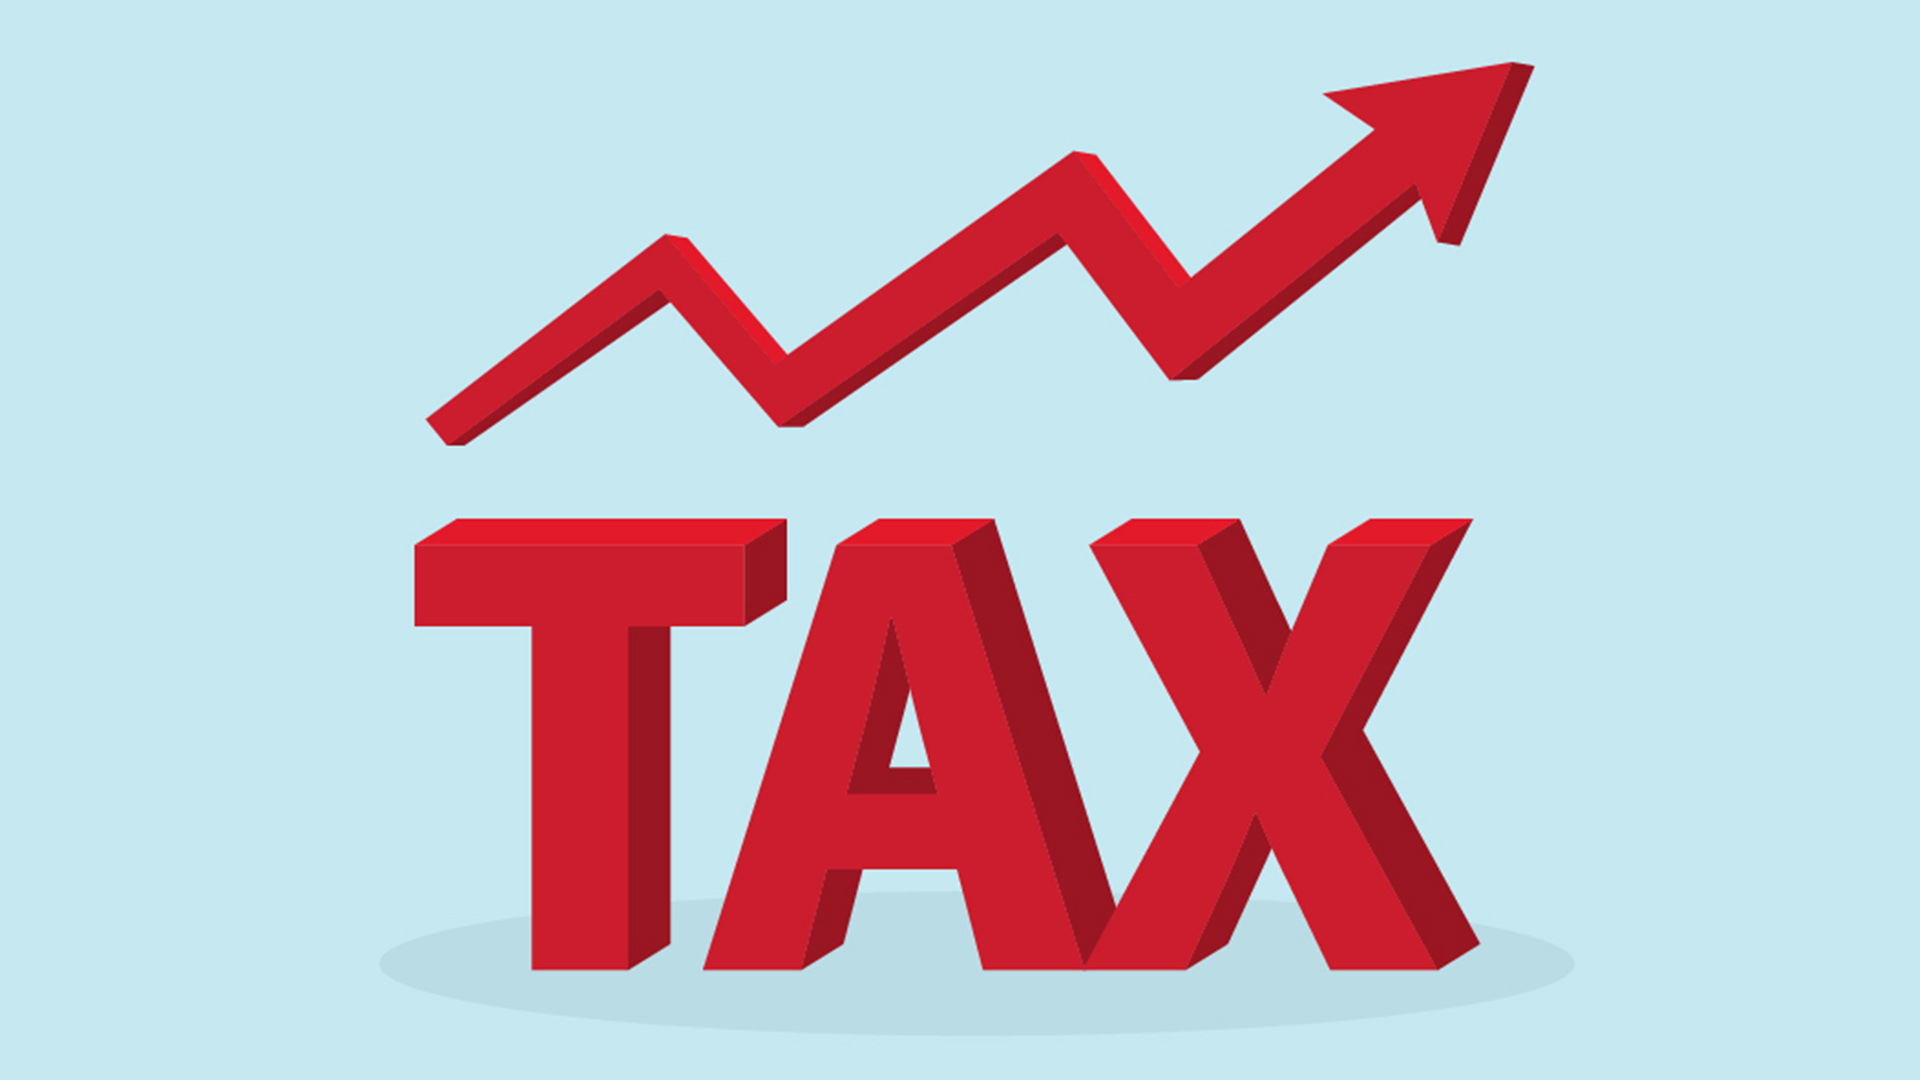 Realty, infra cos face higher tax outgo under new rule